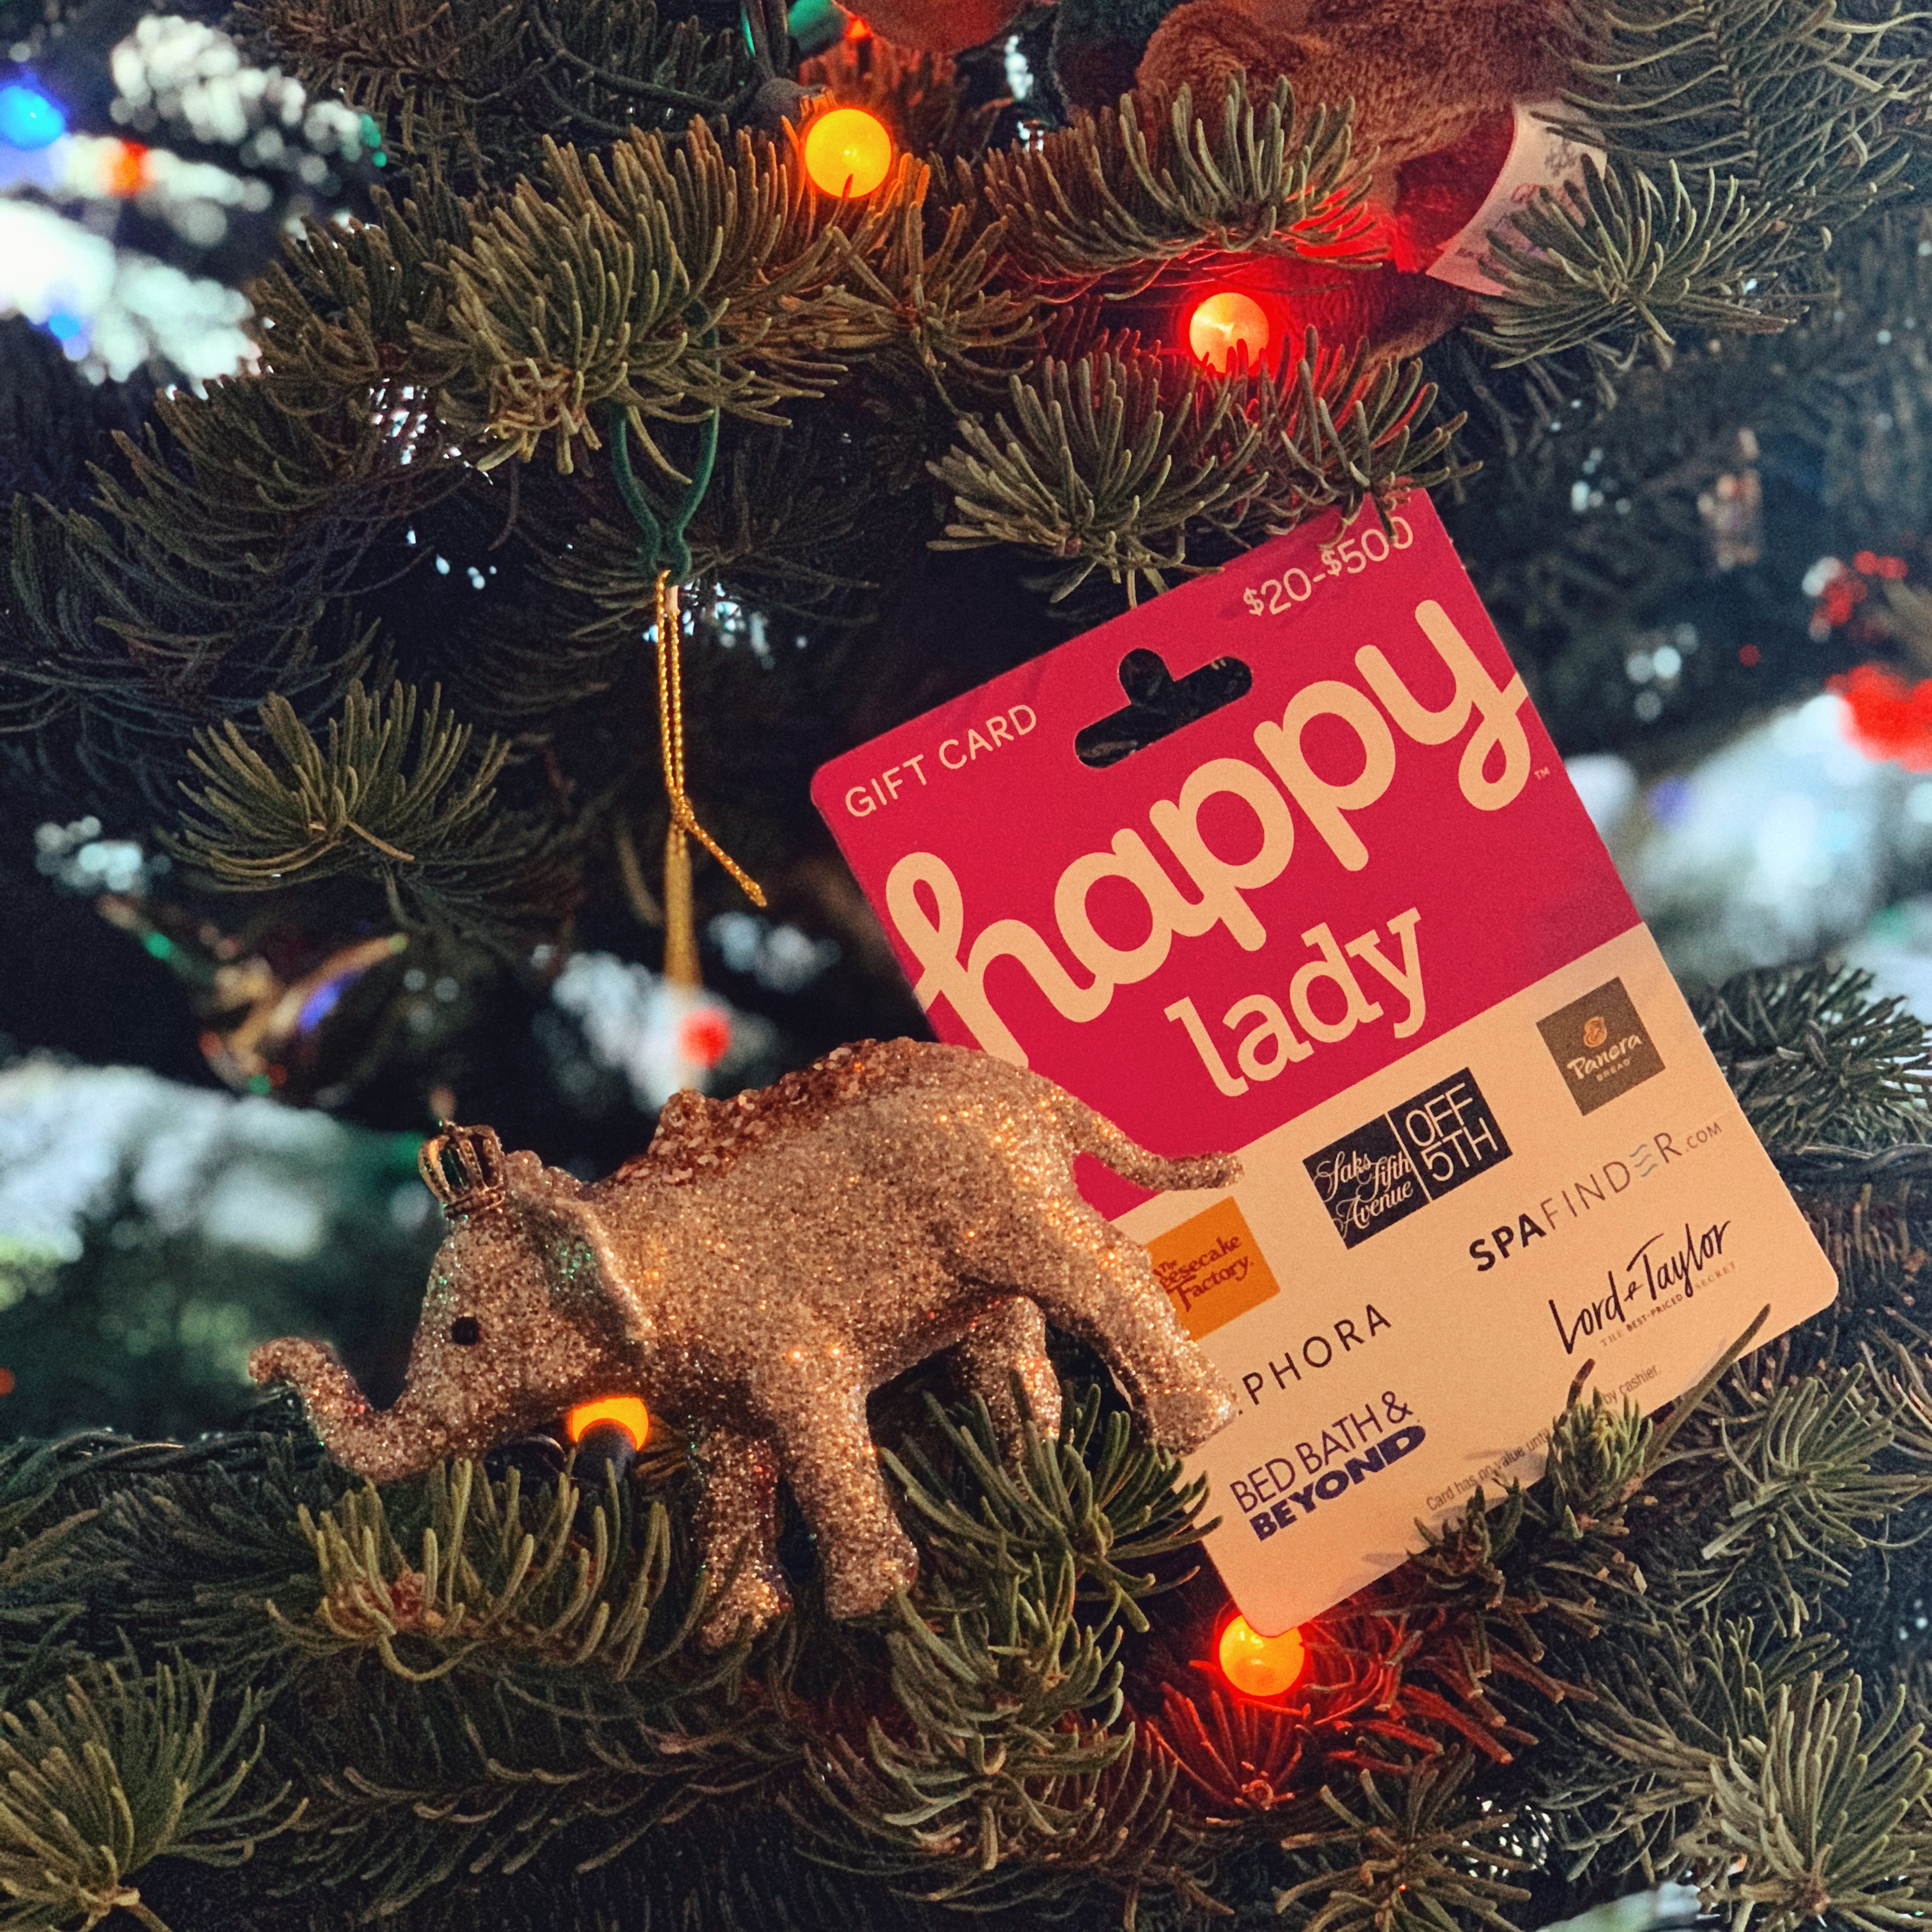 Happy Lady Happy Card Review-trying out the gift card at Cheesecake Factory Seattle and